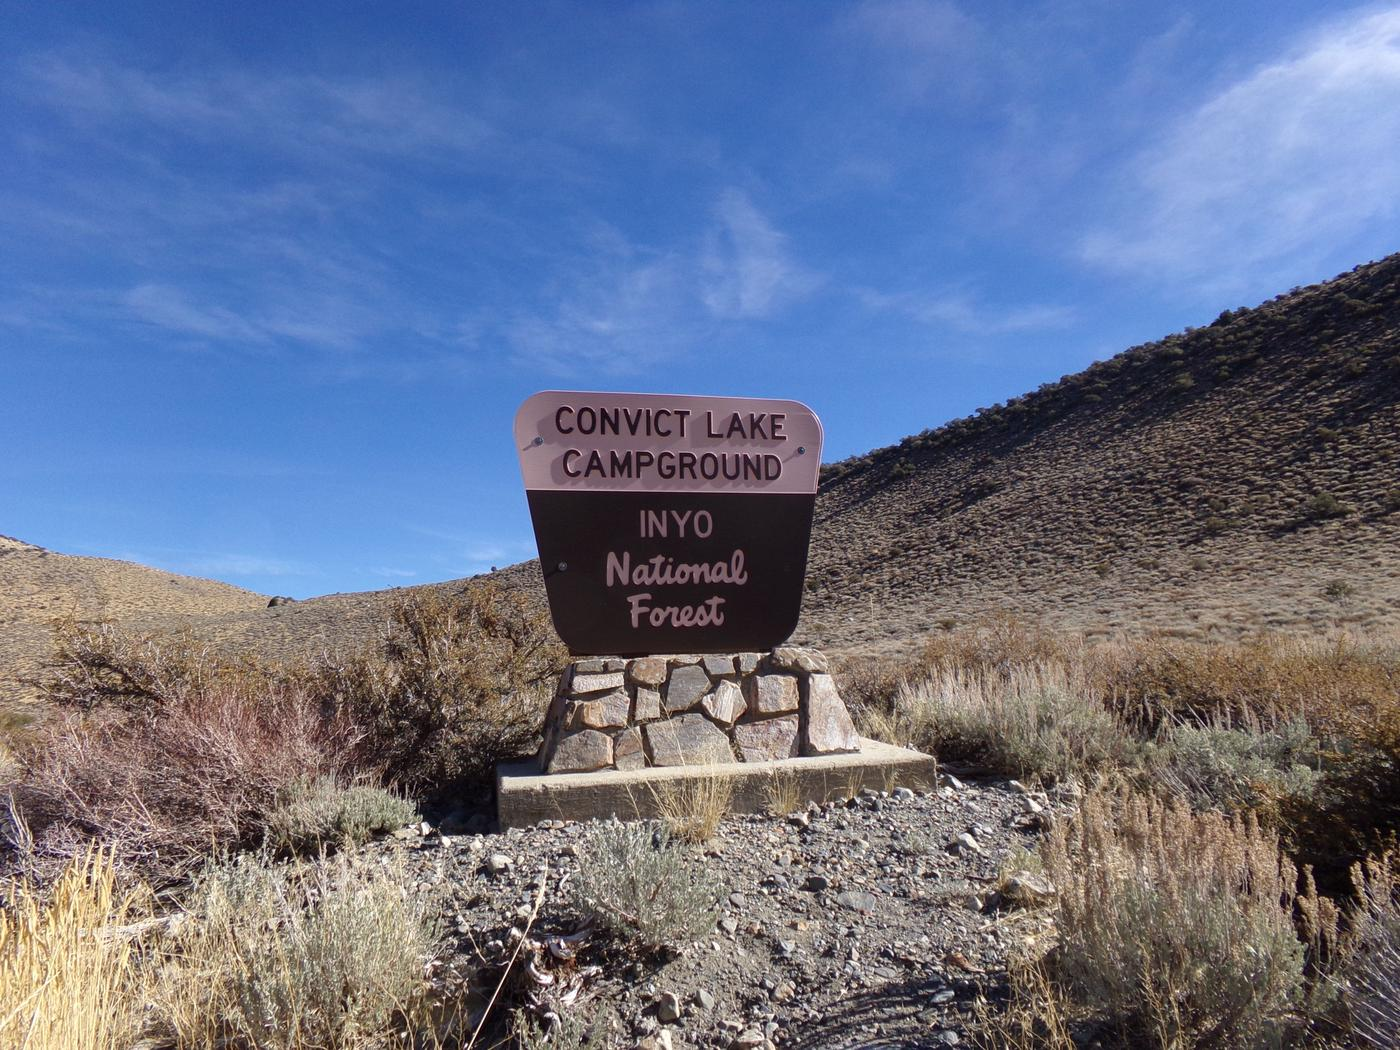 Convict Lake Campground entrance sign